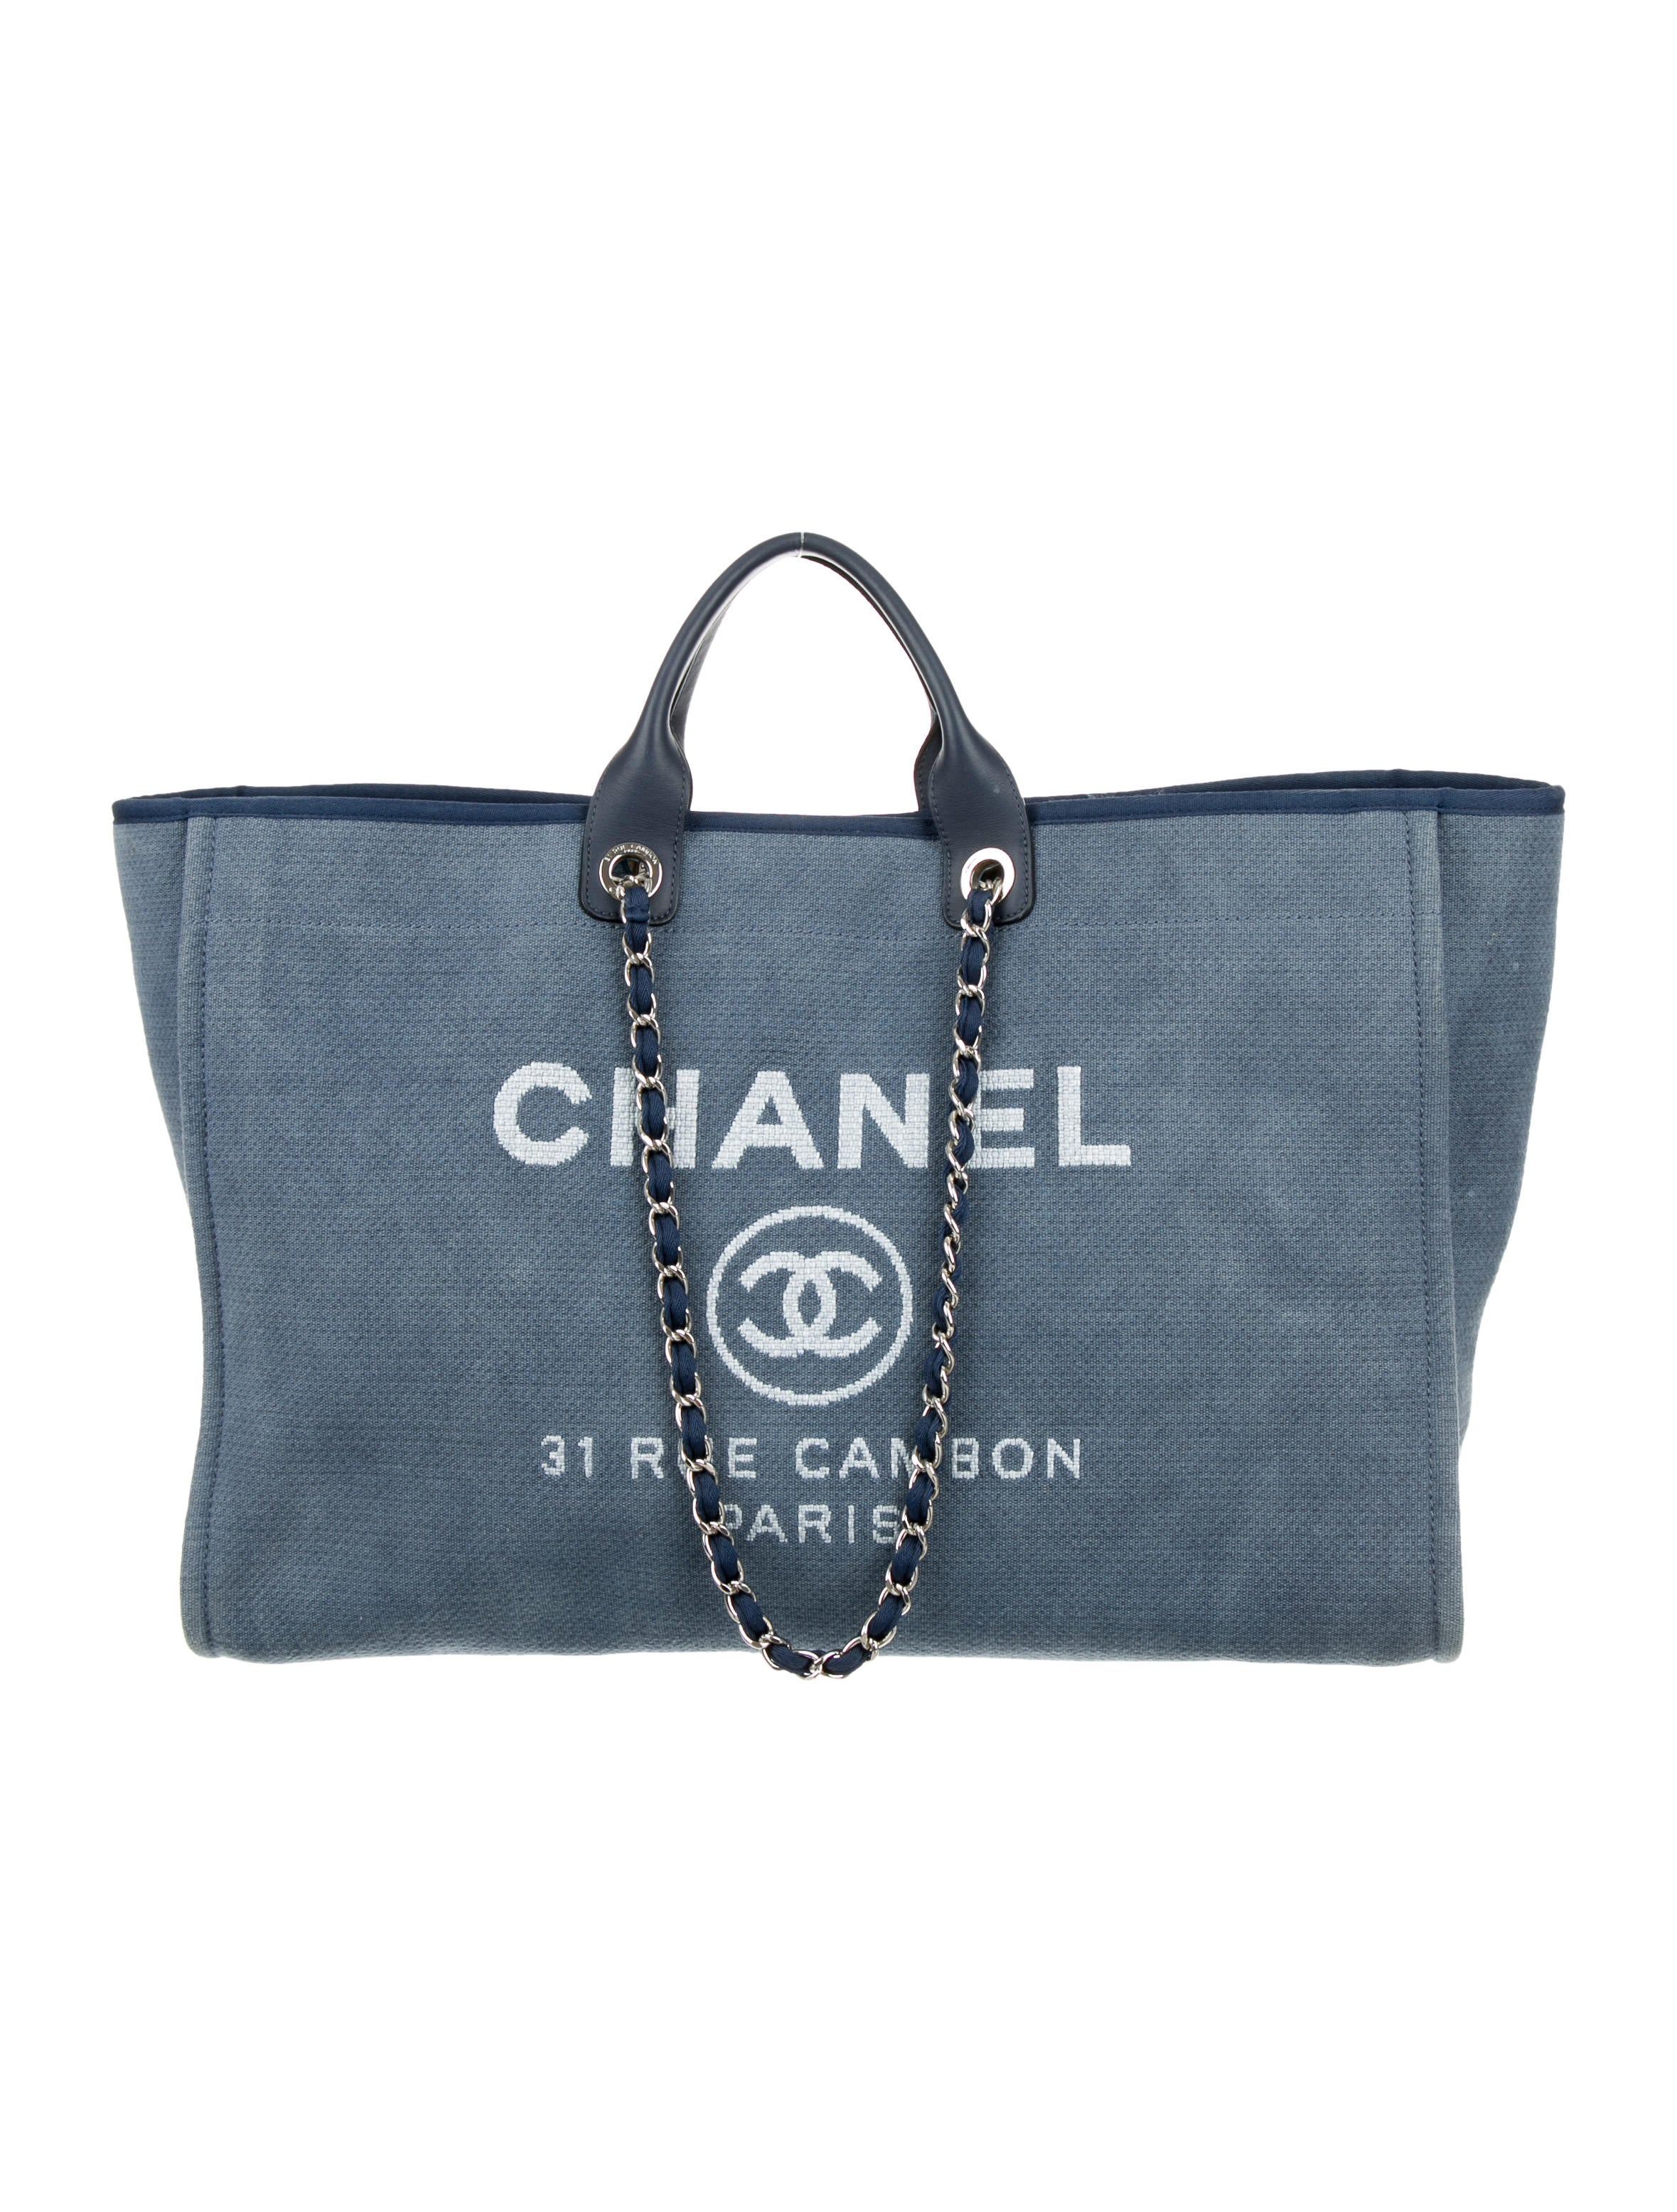 4e6ea441681bef Chanel Deauville Tote Extra Large Bag - Handbags - CHA162730 | The ...